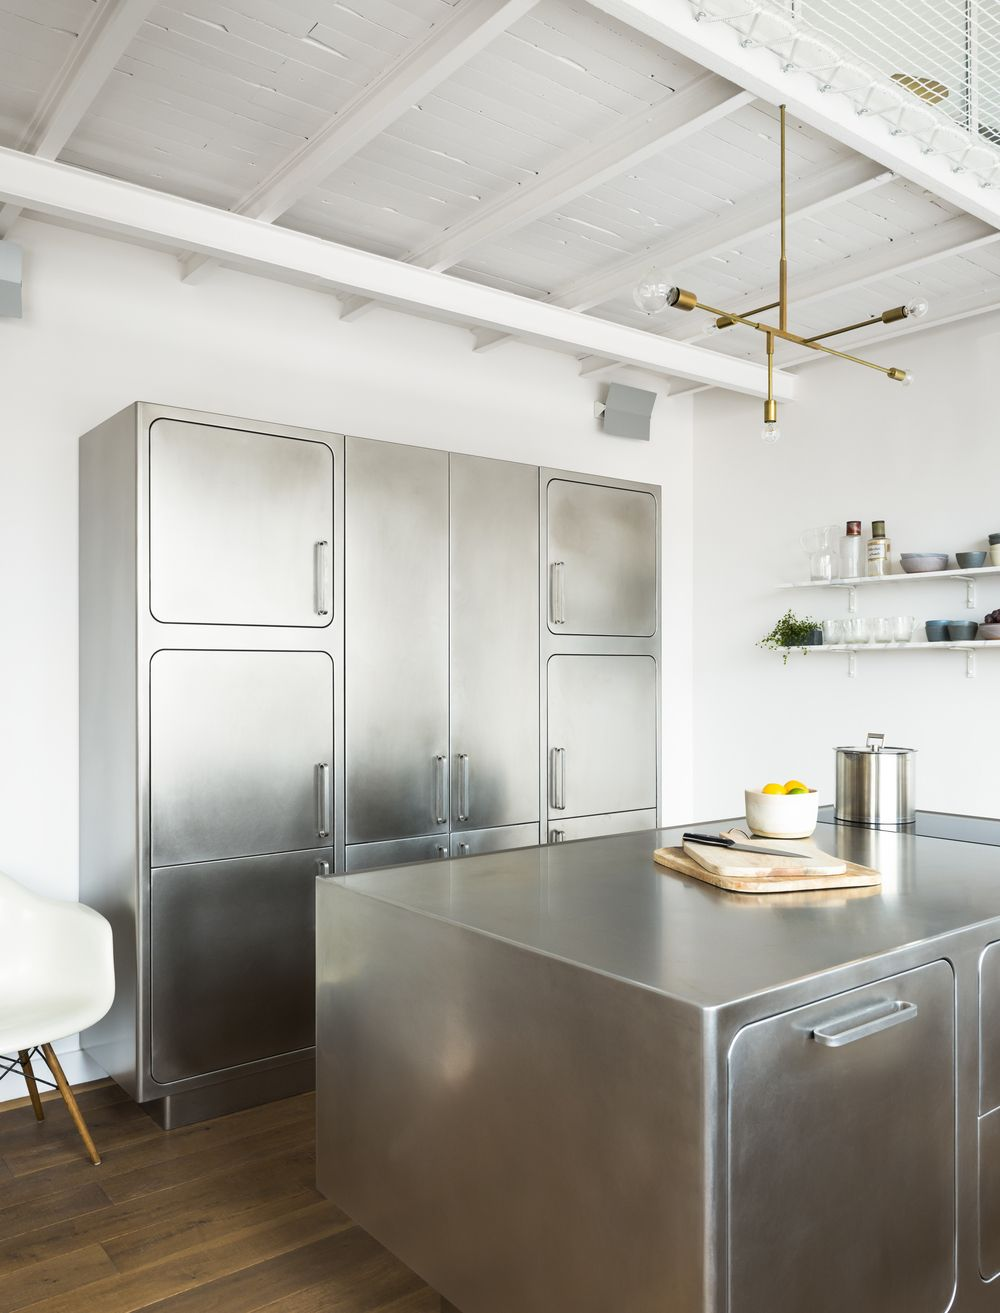 Albimis All Stainless Steel Kitchen In A Paris Loft By Festen Architecture Remodeli Stainless Kitchen Steel Kitchen Cabinets Stainless Steel Kitchen Cabinets